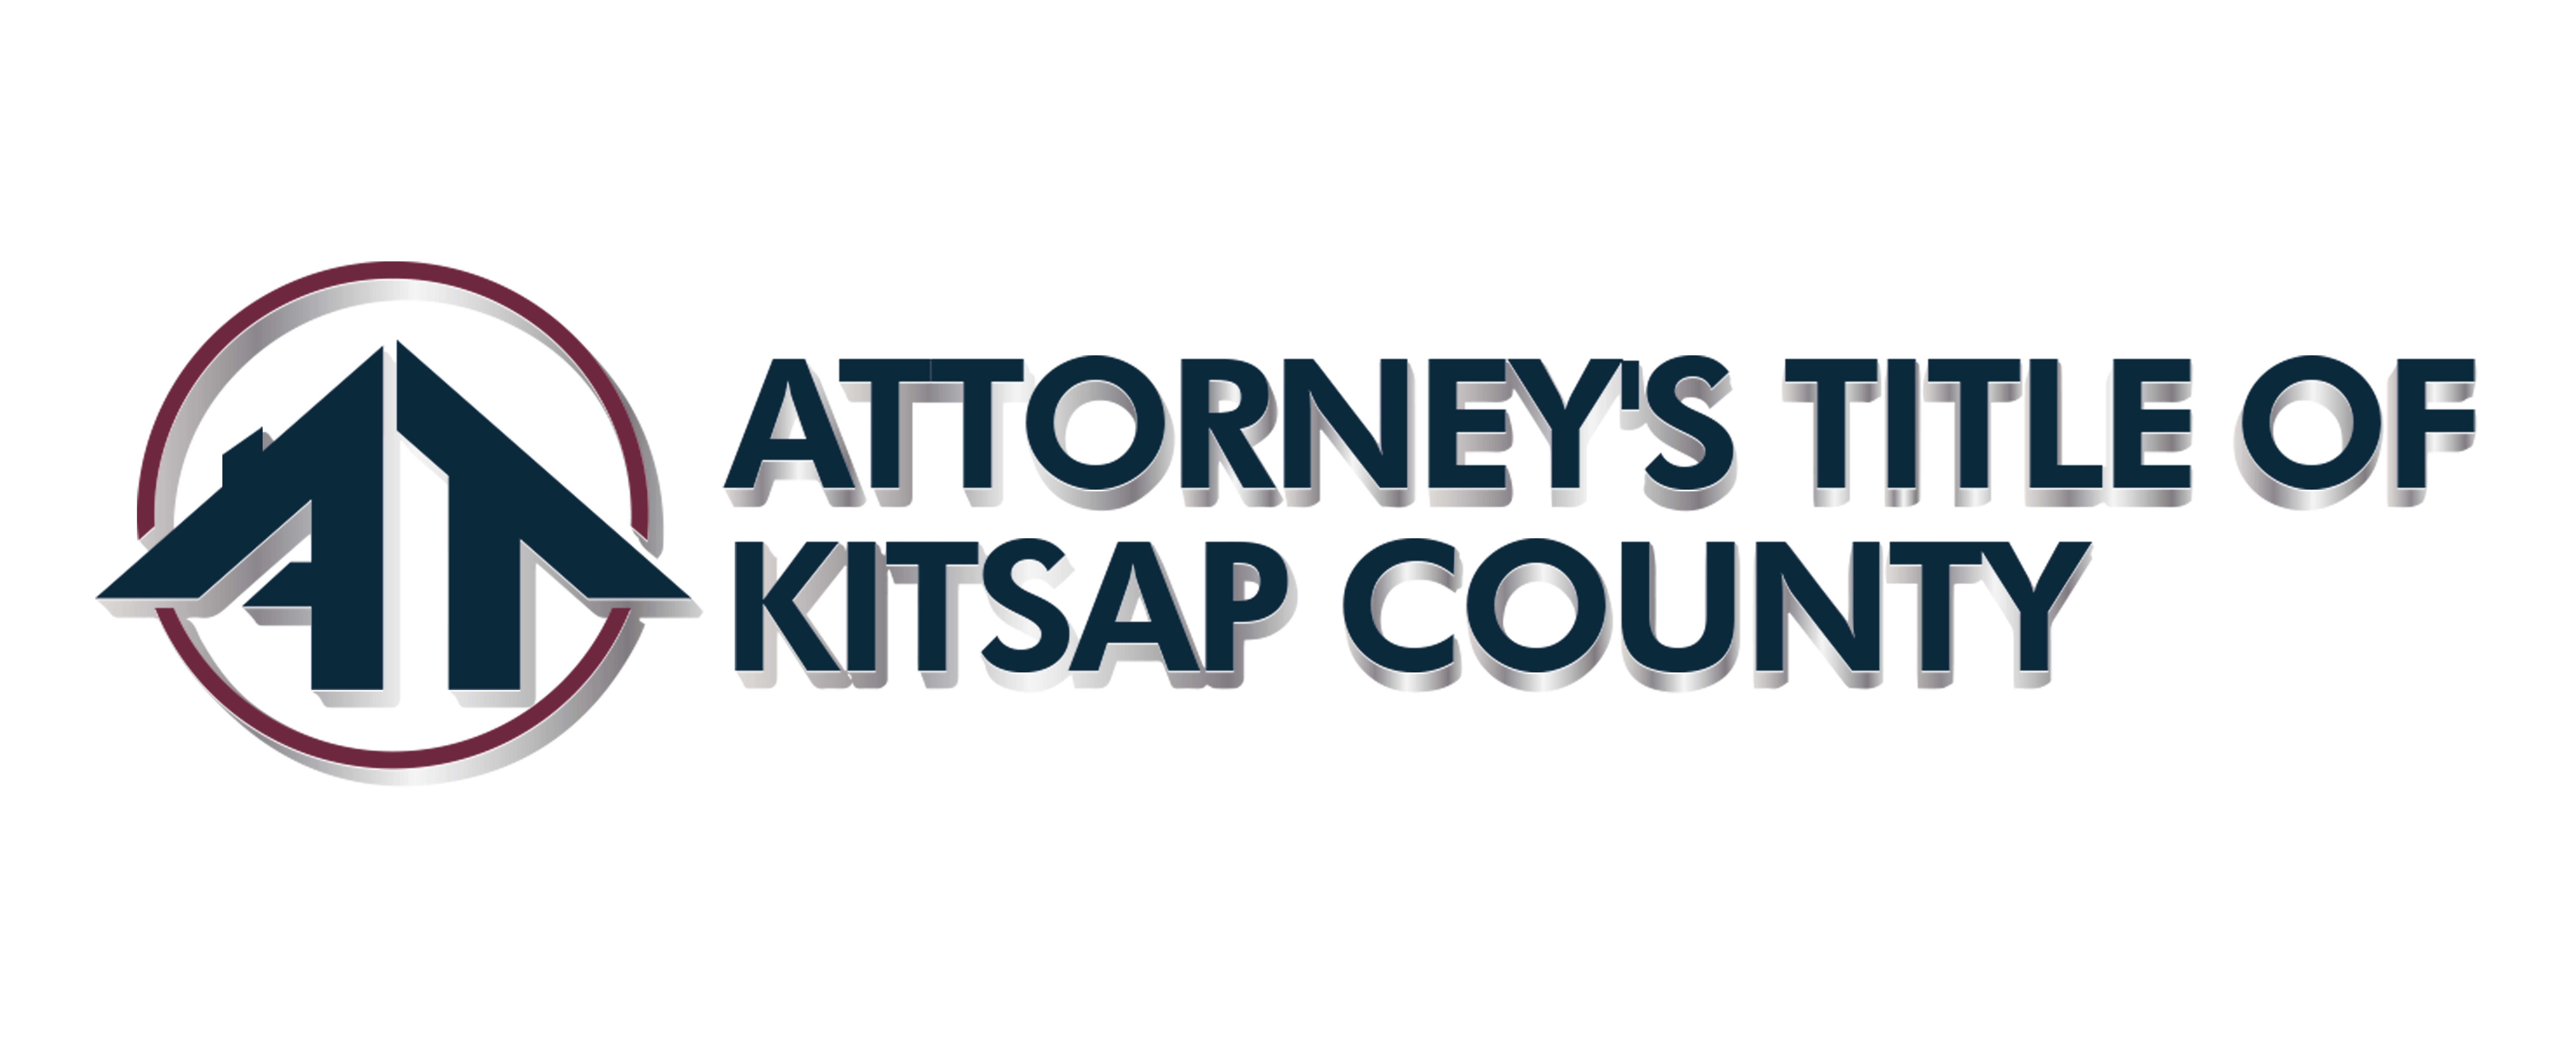 Attorney's Title of Kitsap